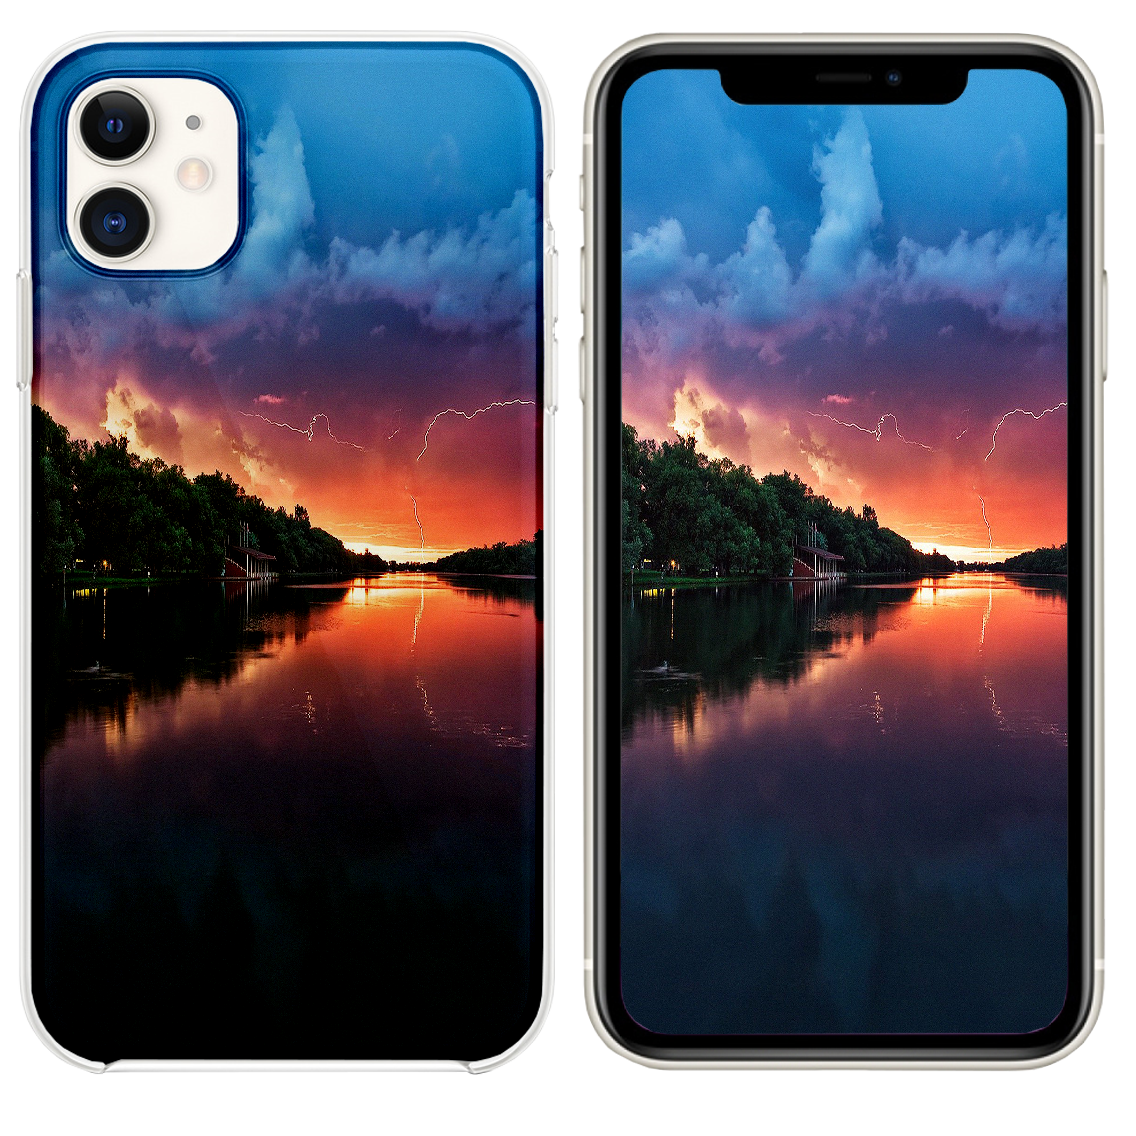 Lightening Reflected Lake Iphone 11 Case And Wallpaper Reflecting Lake Iphone Iphone 11